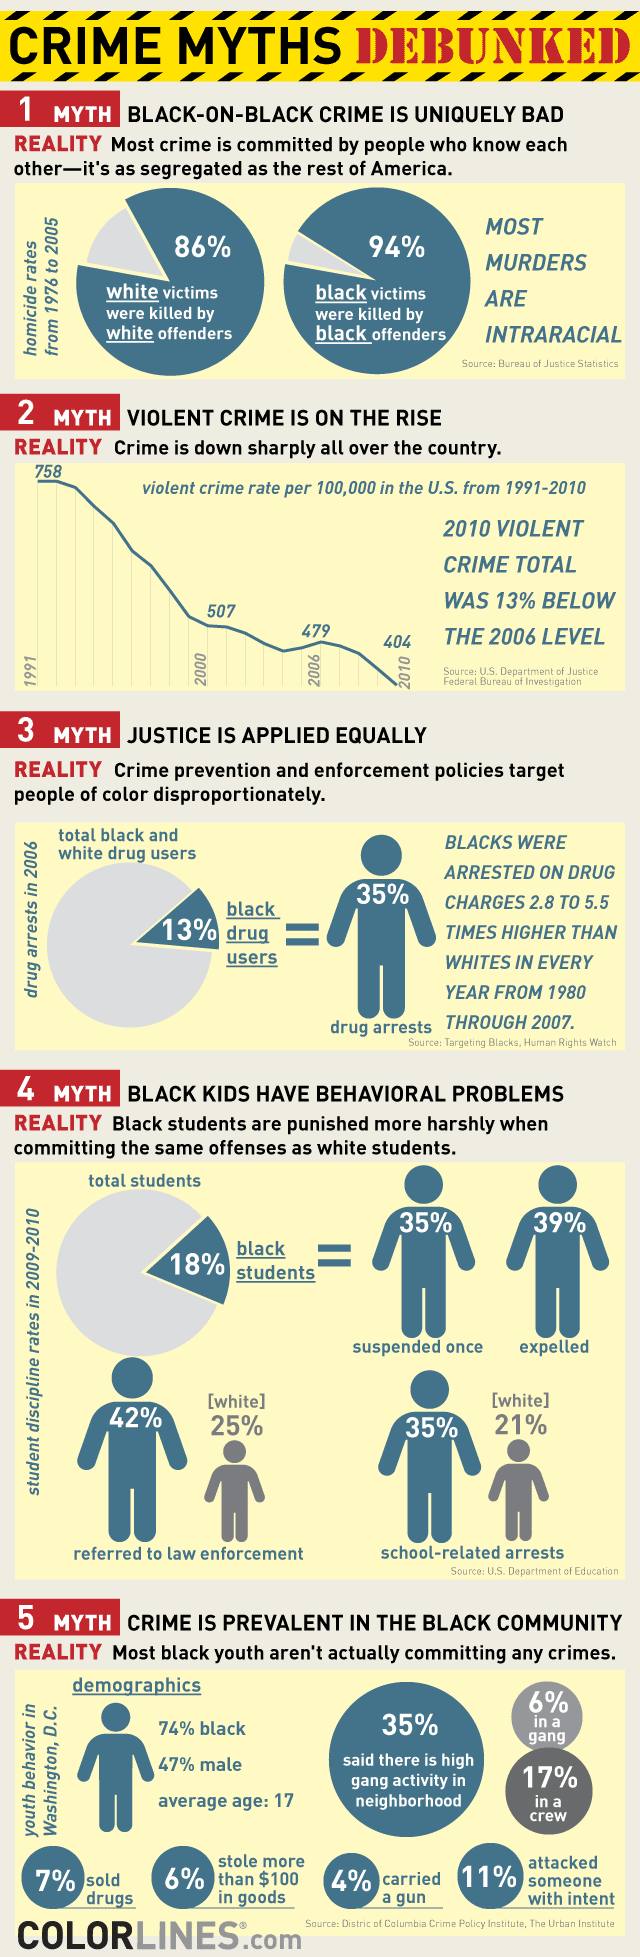 crime myths.png 5 Myths About Crime And Race In America